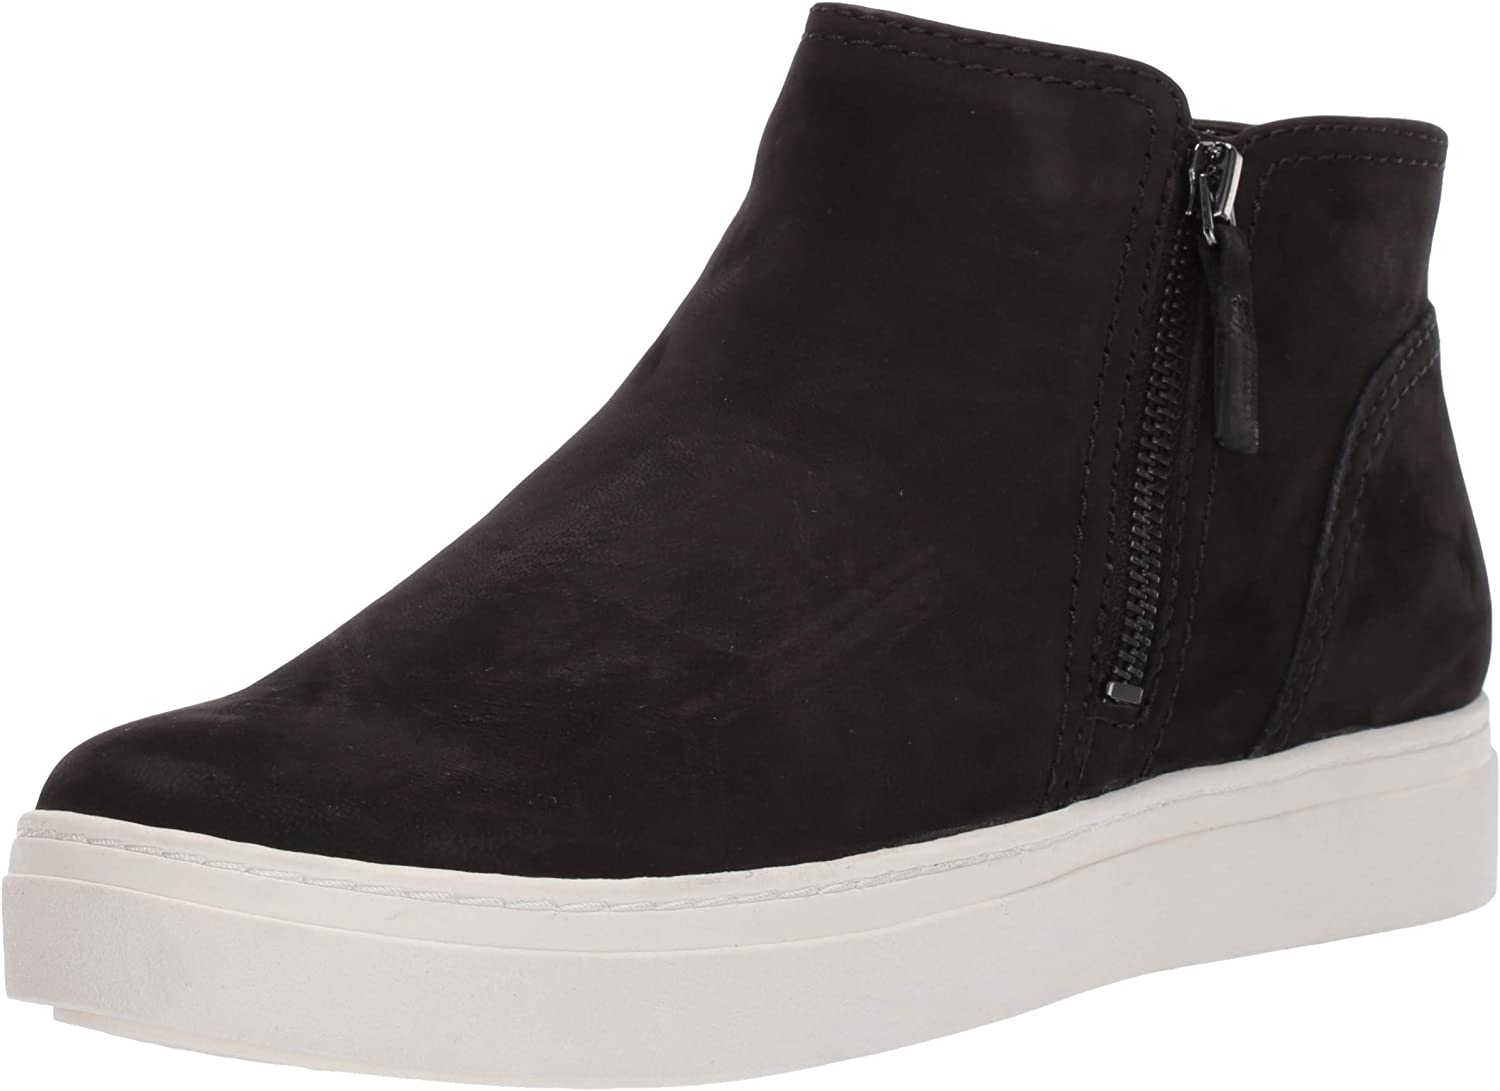 Naturalizer Women's Celeste Booties Ankle Boot